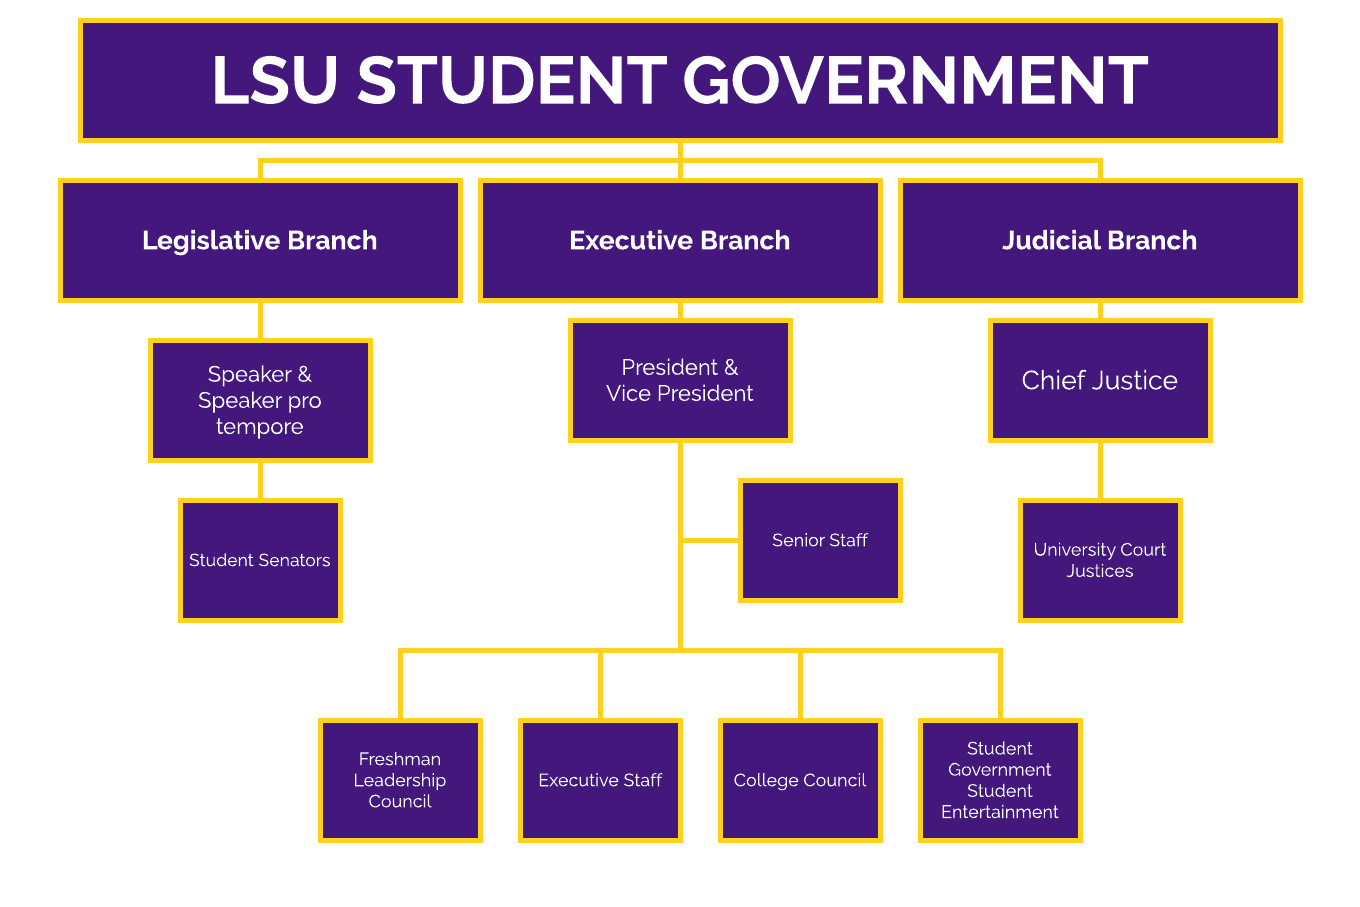 u s government structure diagram wiring for 7 prong trailer plug about us lsu student